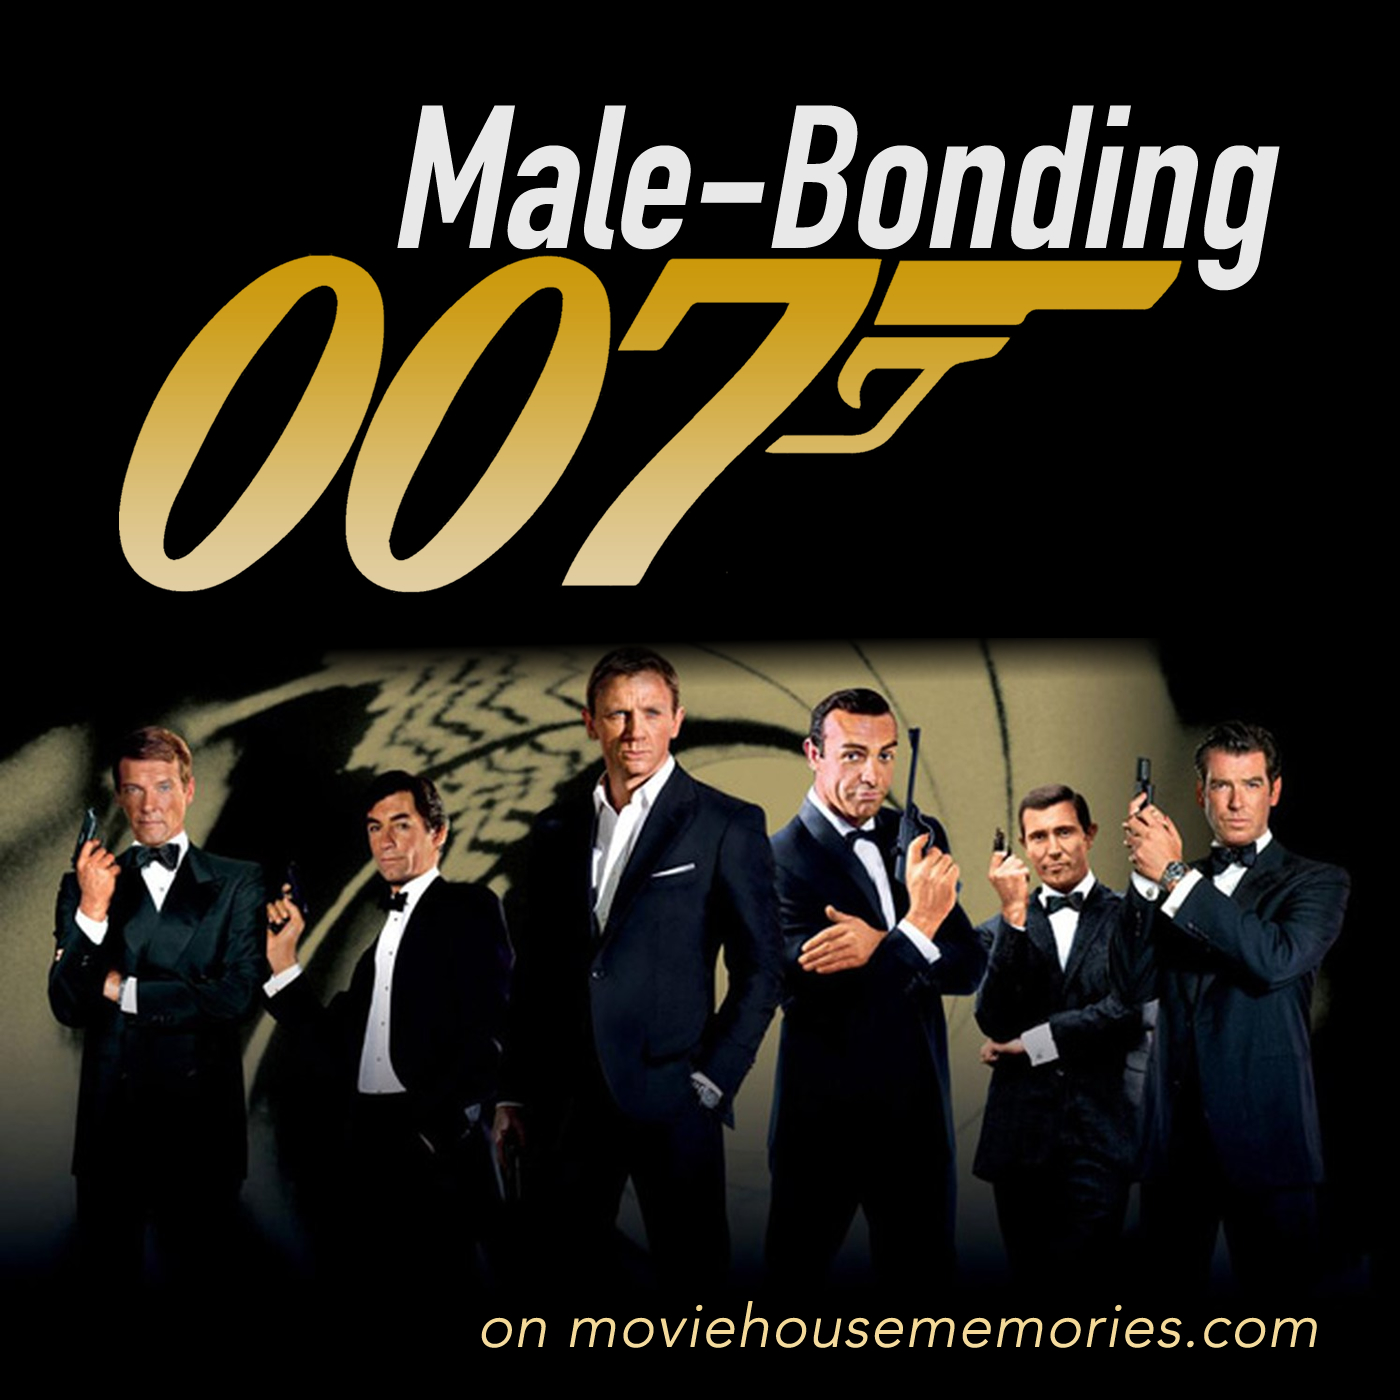 Male Bonding: The James Bond Movie Reviews